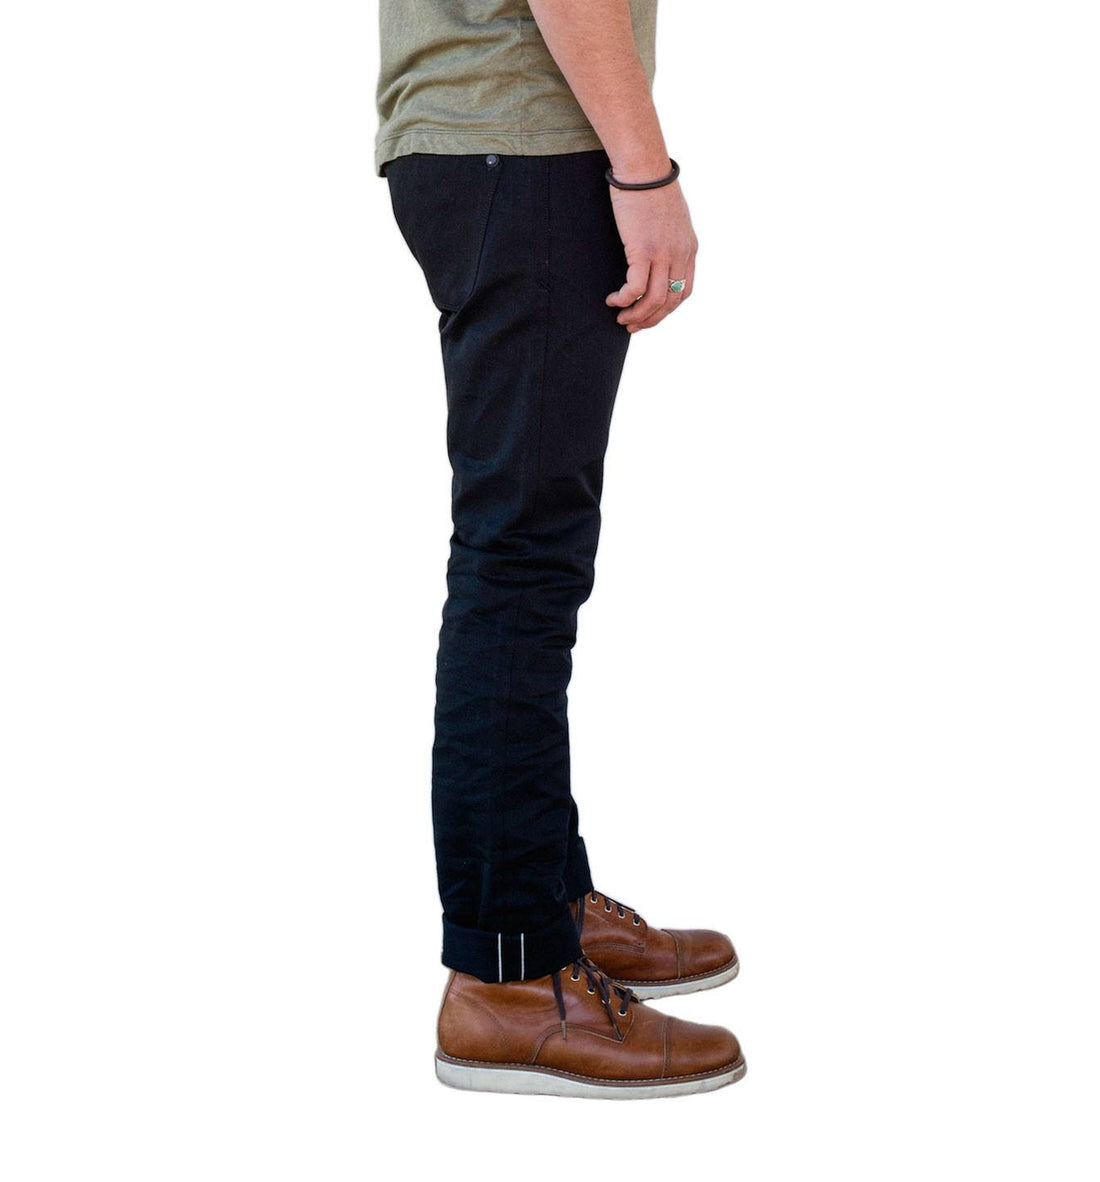 Freenote Avila Denim - Apparel: Men's: Pants - Iron and Resin